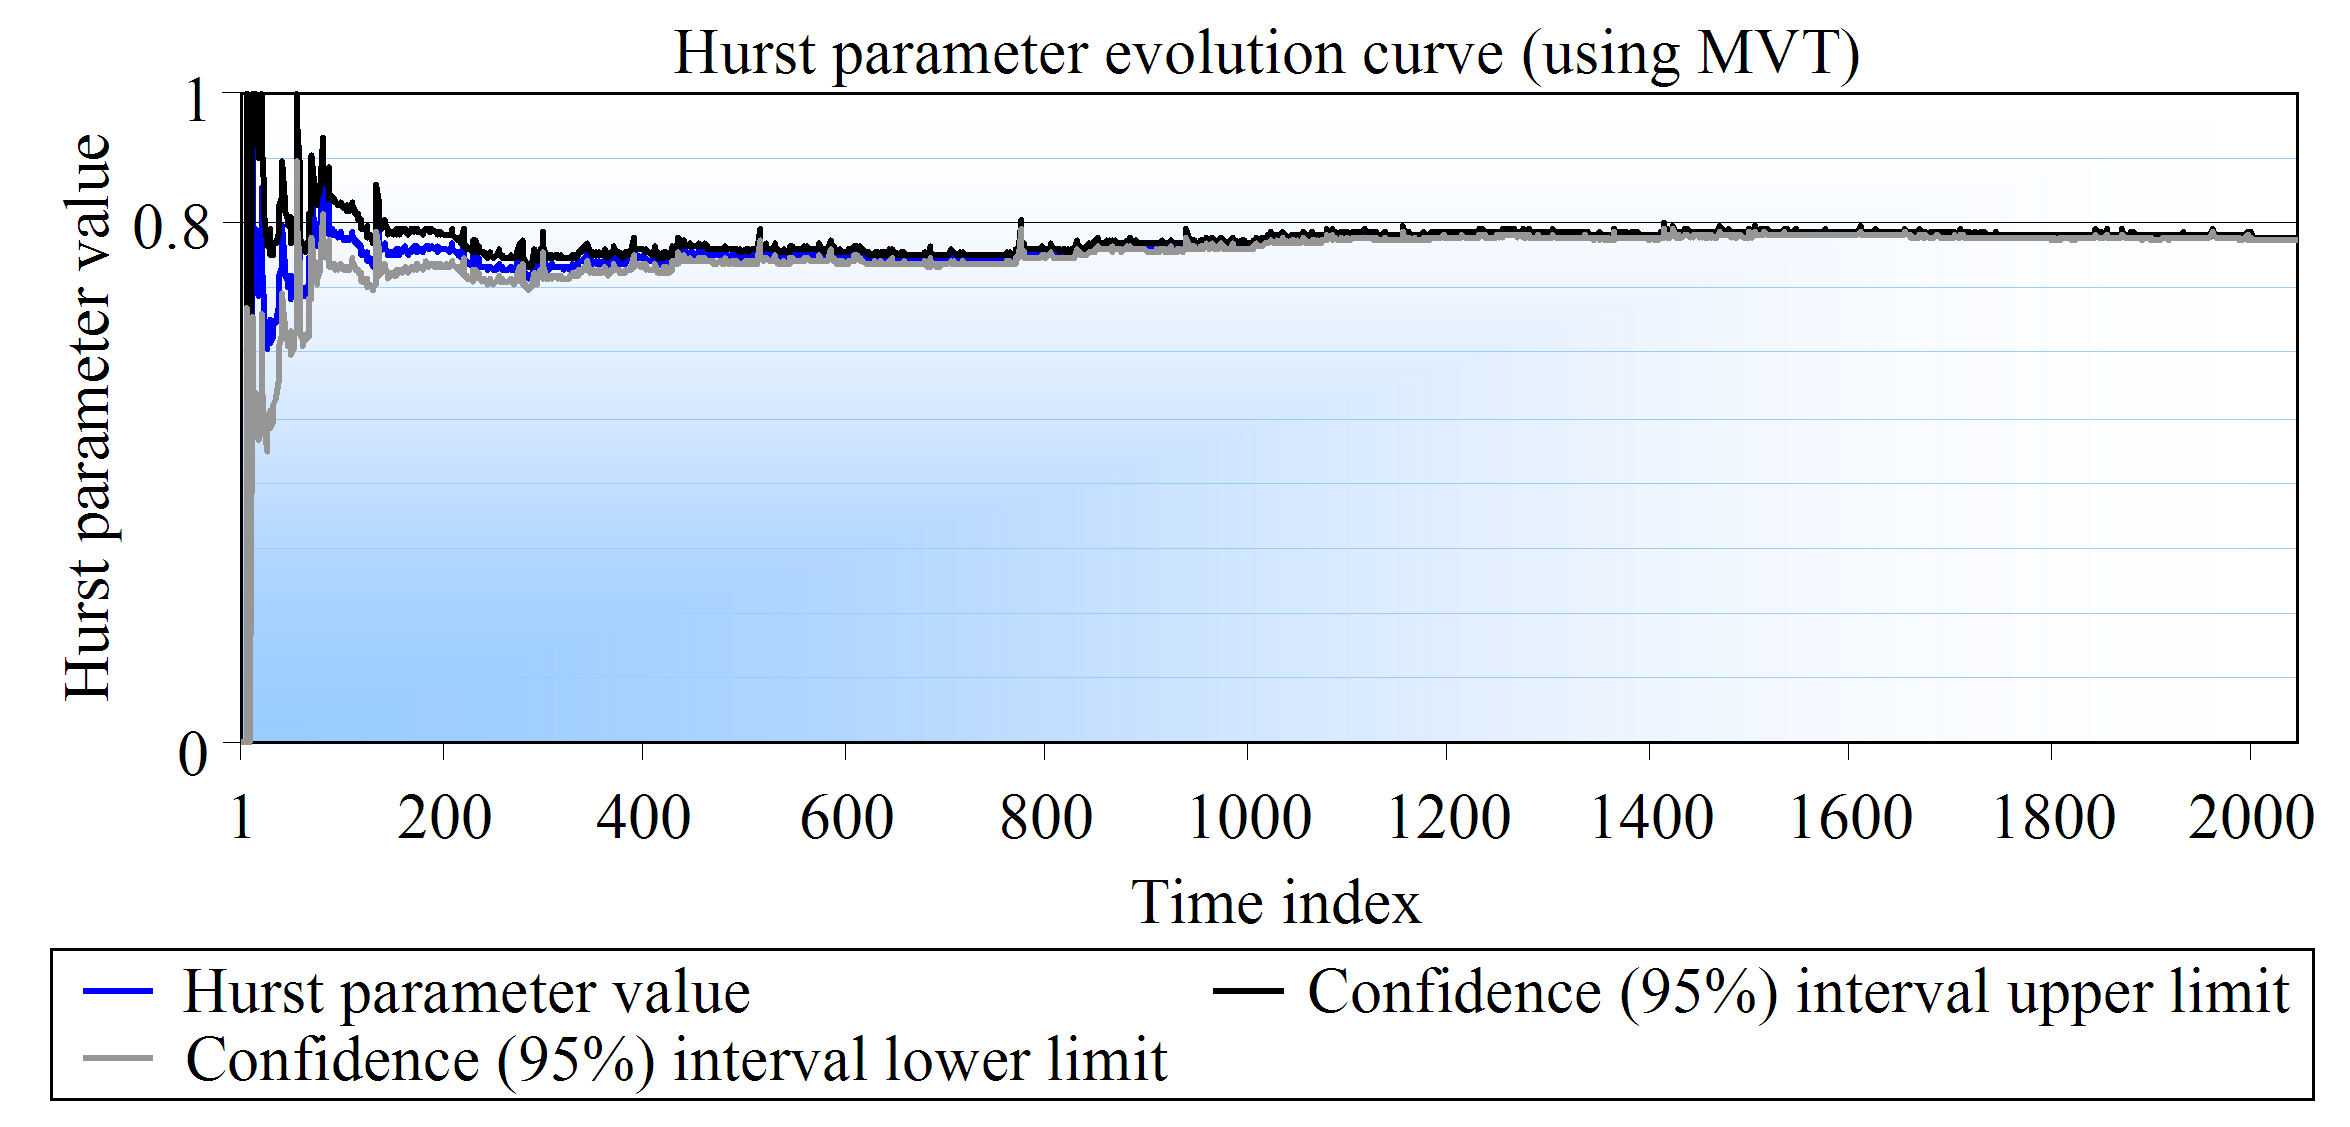 Figure 3.6: The evolution curve of the Hurst parameter estimated using MVT. This curve reflects the analysis of a sequence with 2048 values and an expected self-similarity degree of 0.